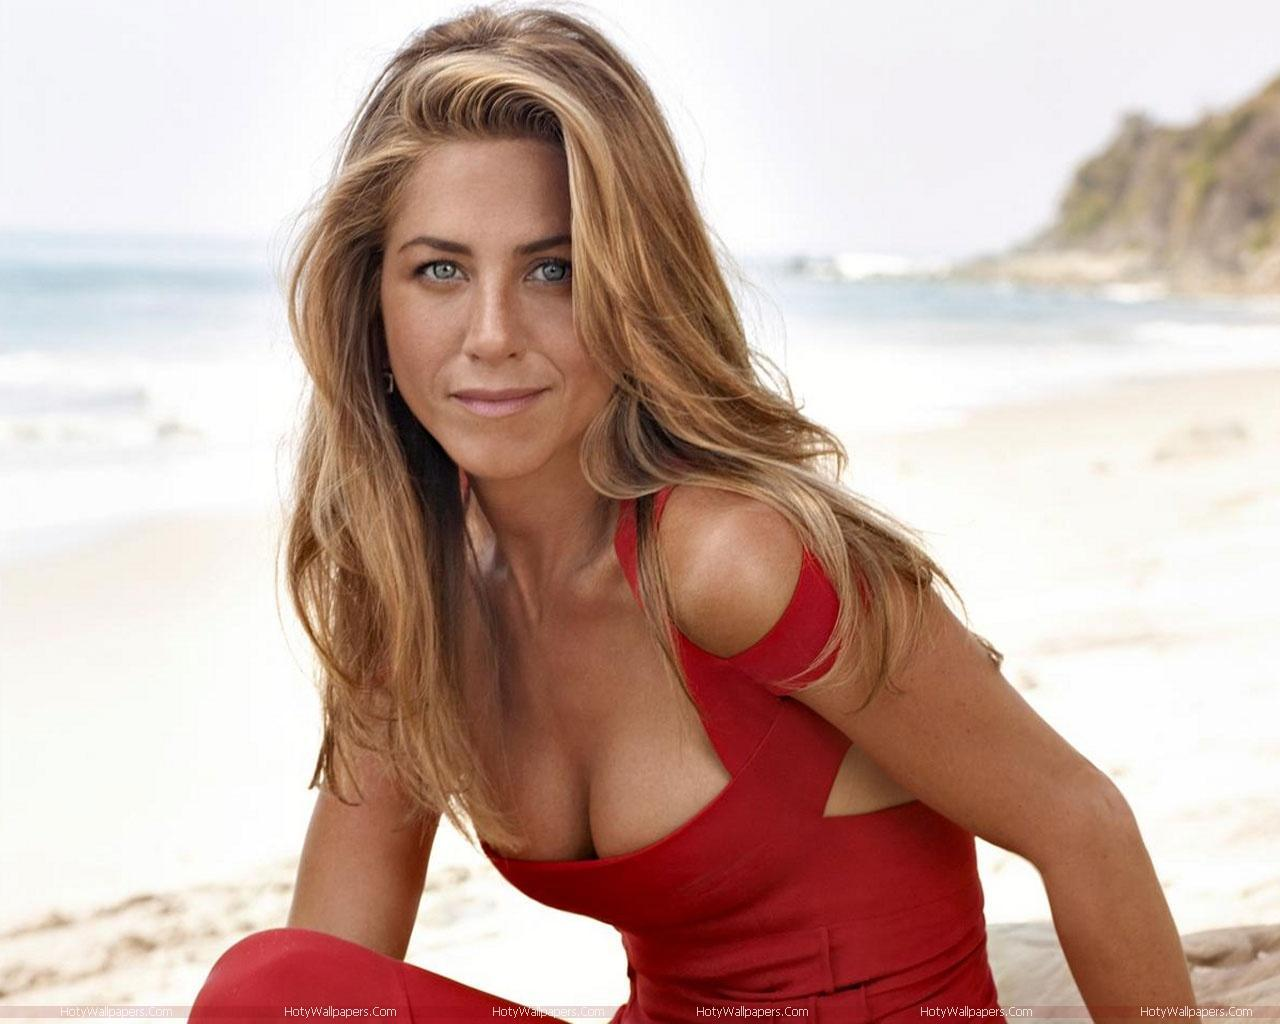 http://2.bp.blogspot.com/-U1WN3T--TbY/TmY0sIWxLWI/AAAAAAAAKfg/nyCxP7MMhmg/s1600/Jennifer_Aniston_hot_photo_shoot.jpg